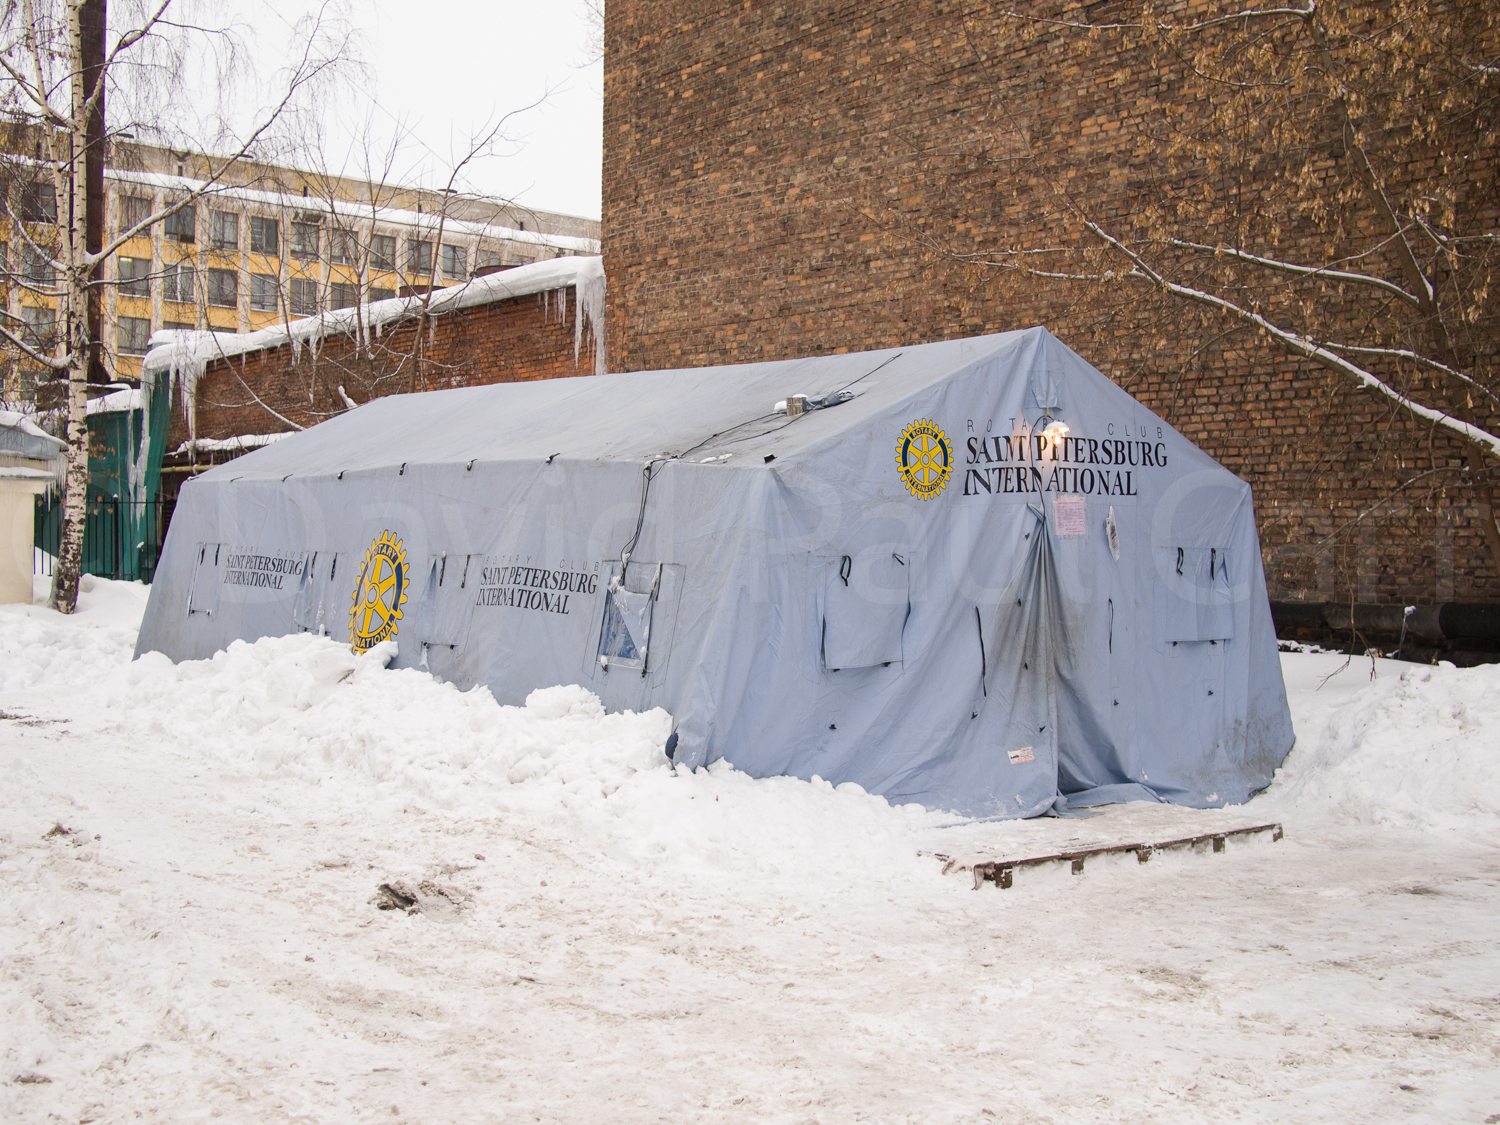 The NGO Nochlezkha has installed a tent that serves as emergency night shelter for a few of Saint Petersburg's homeless. Temperatures at night can drop to -20°C.